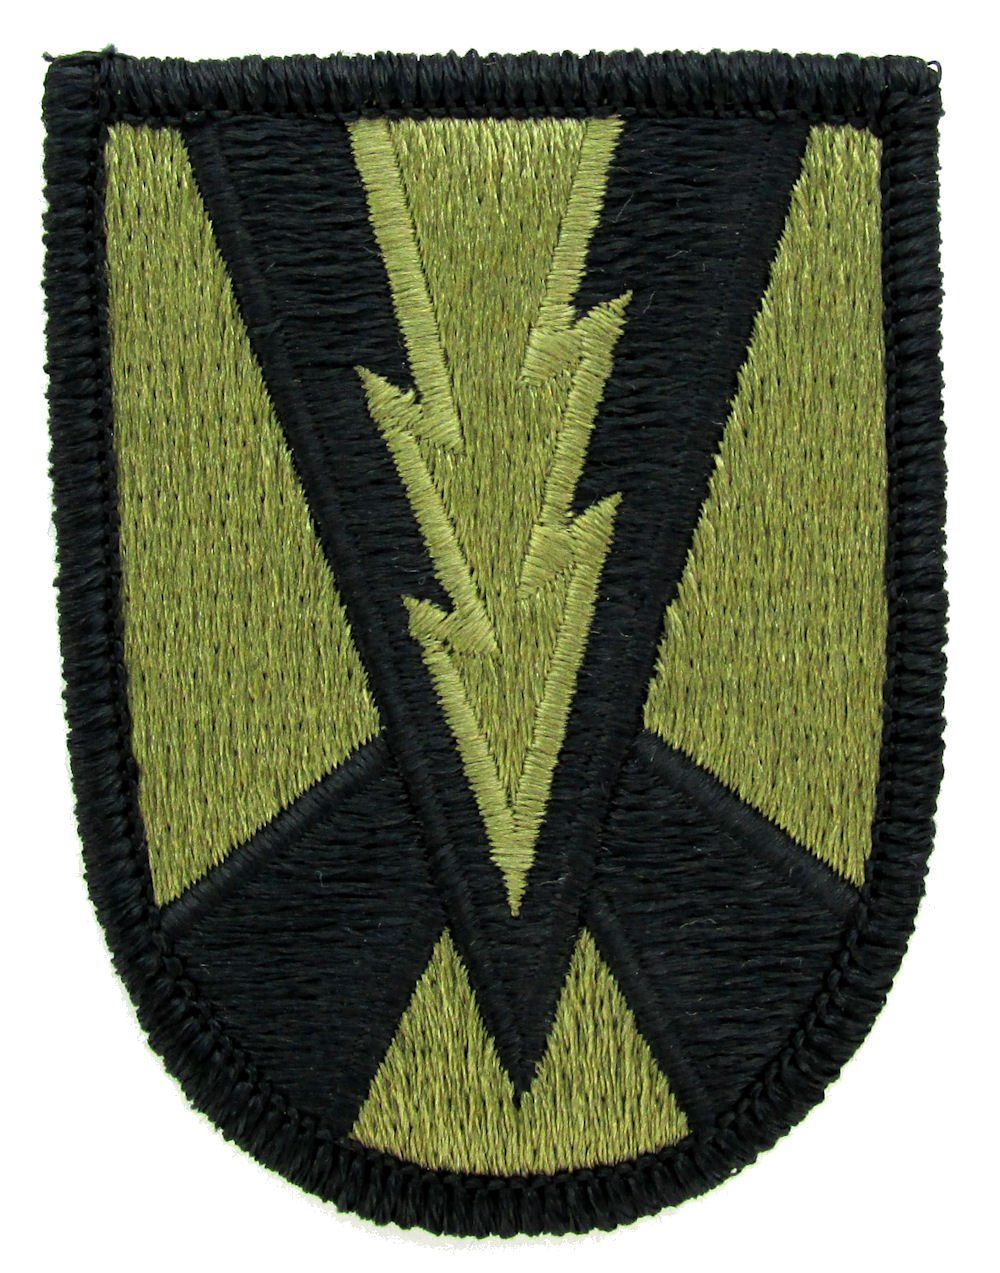 165th Infantry Brigade OCP Patch - Scorpion W2 by Military Uniform Supply (Image #1)